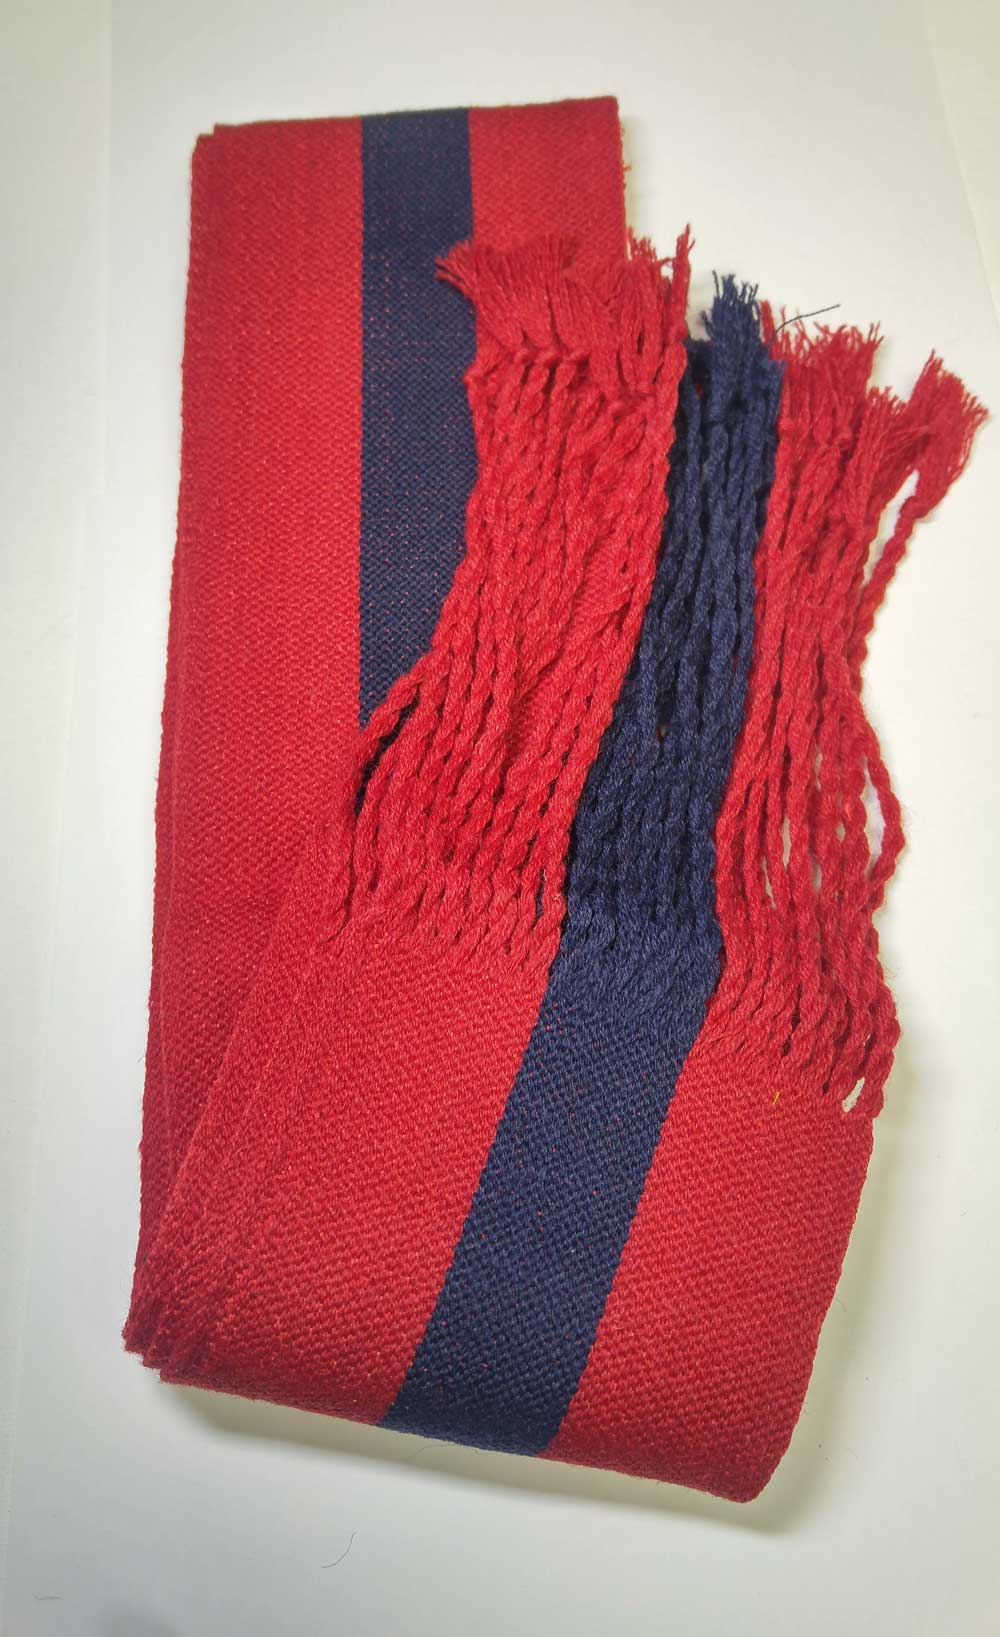 Sash: Sgt., Red with Blue Stripe, 18/19C